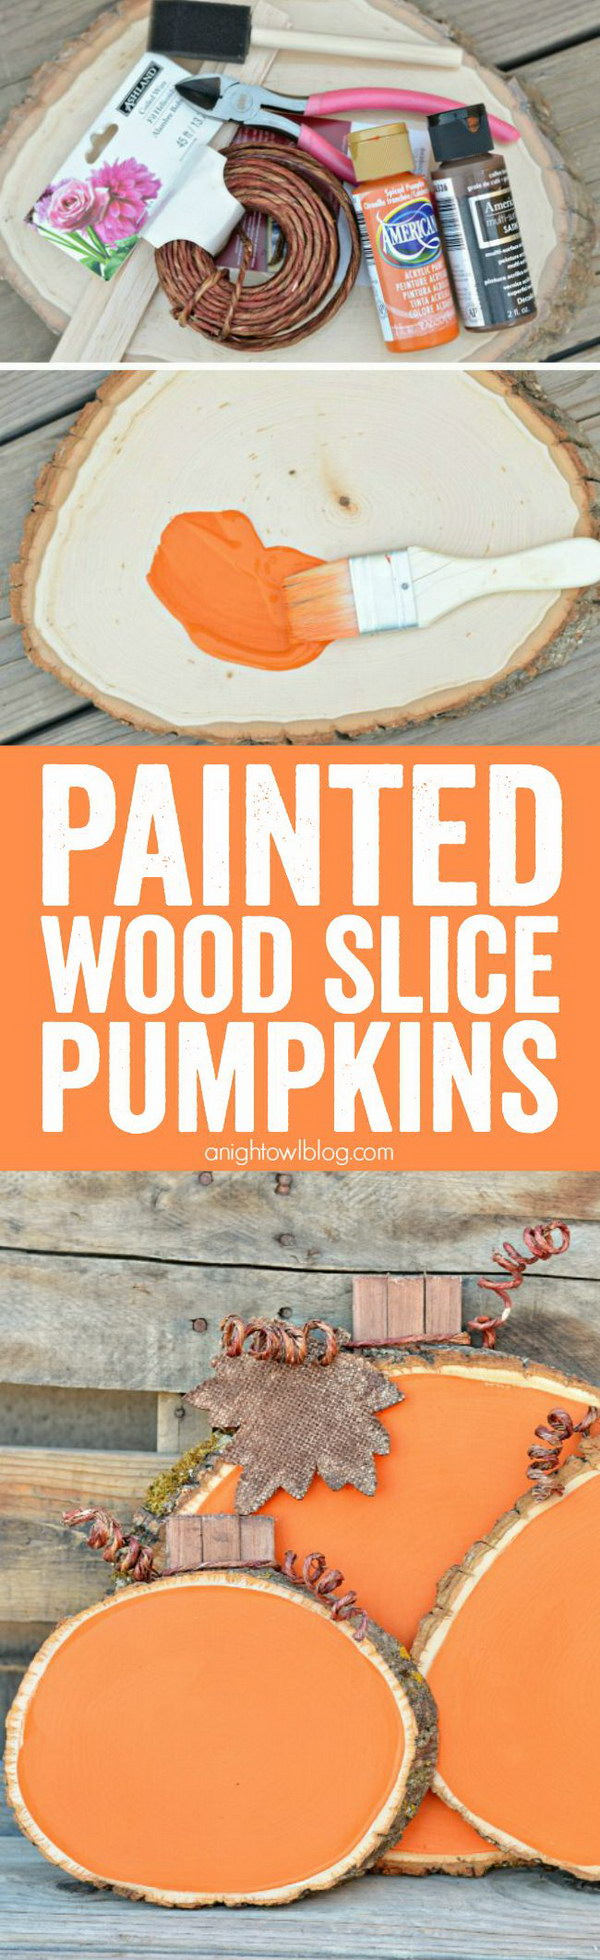 Painted Wood Slice Pumpkins.